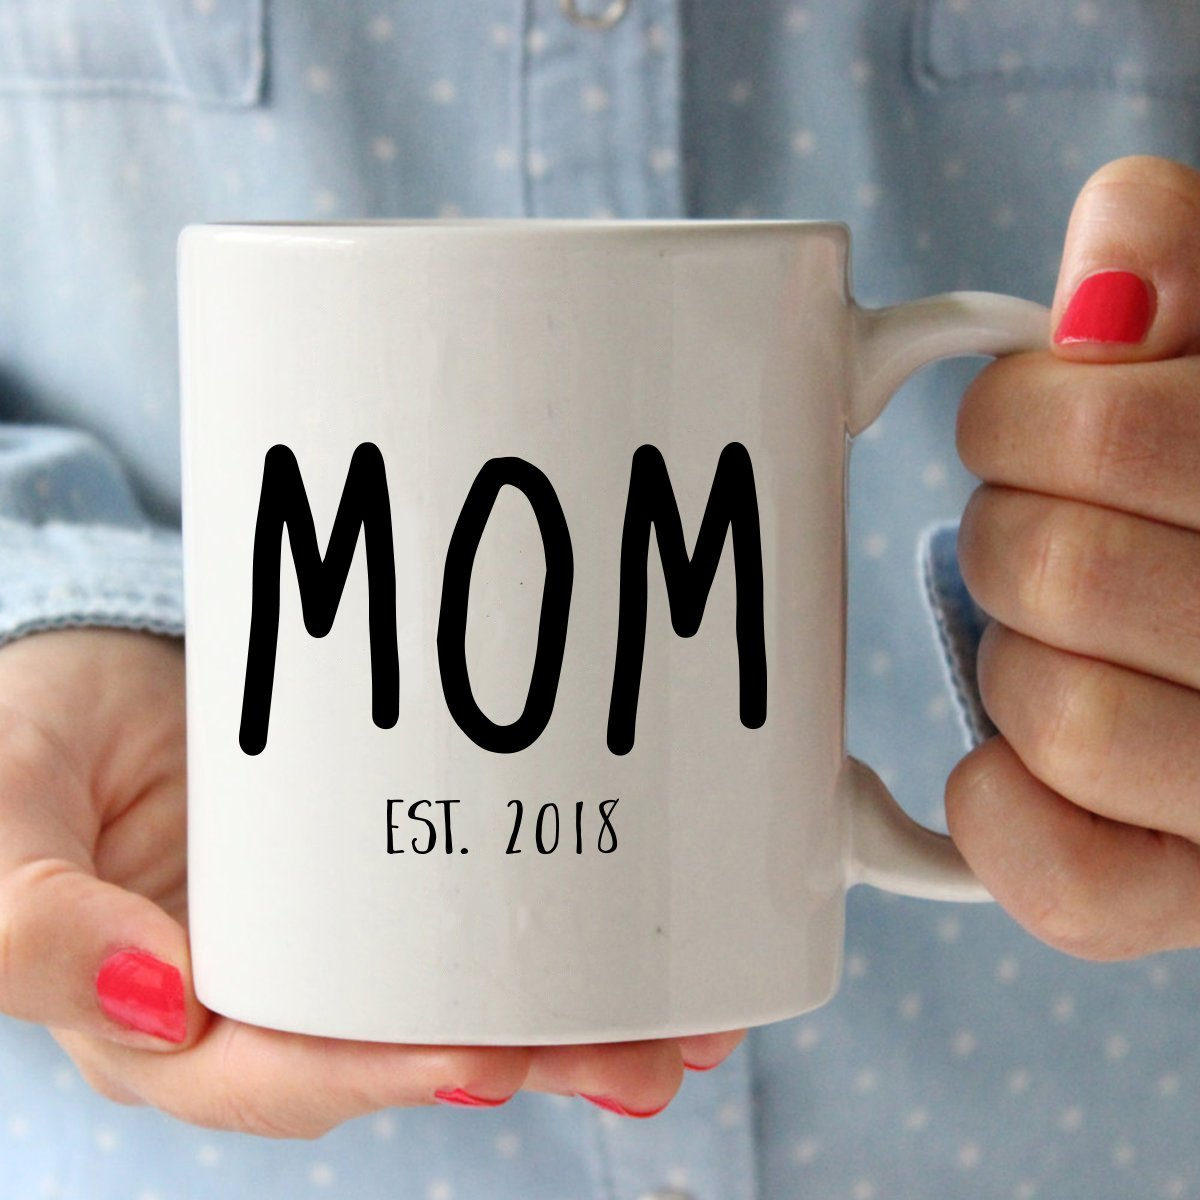 New Parents Pregnancy 2018 Announcement Coffee Mug Set 11oz - Unique Christmas Gift For Parents To Be - Perfect Present For Baby Showers - Mom and Dad Gift by Gelid (Image #2)